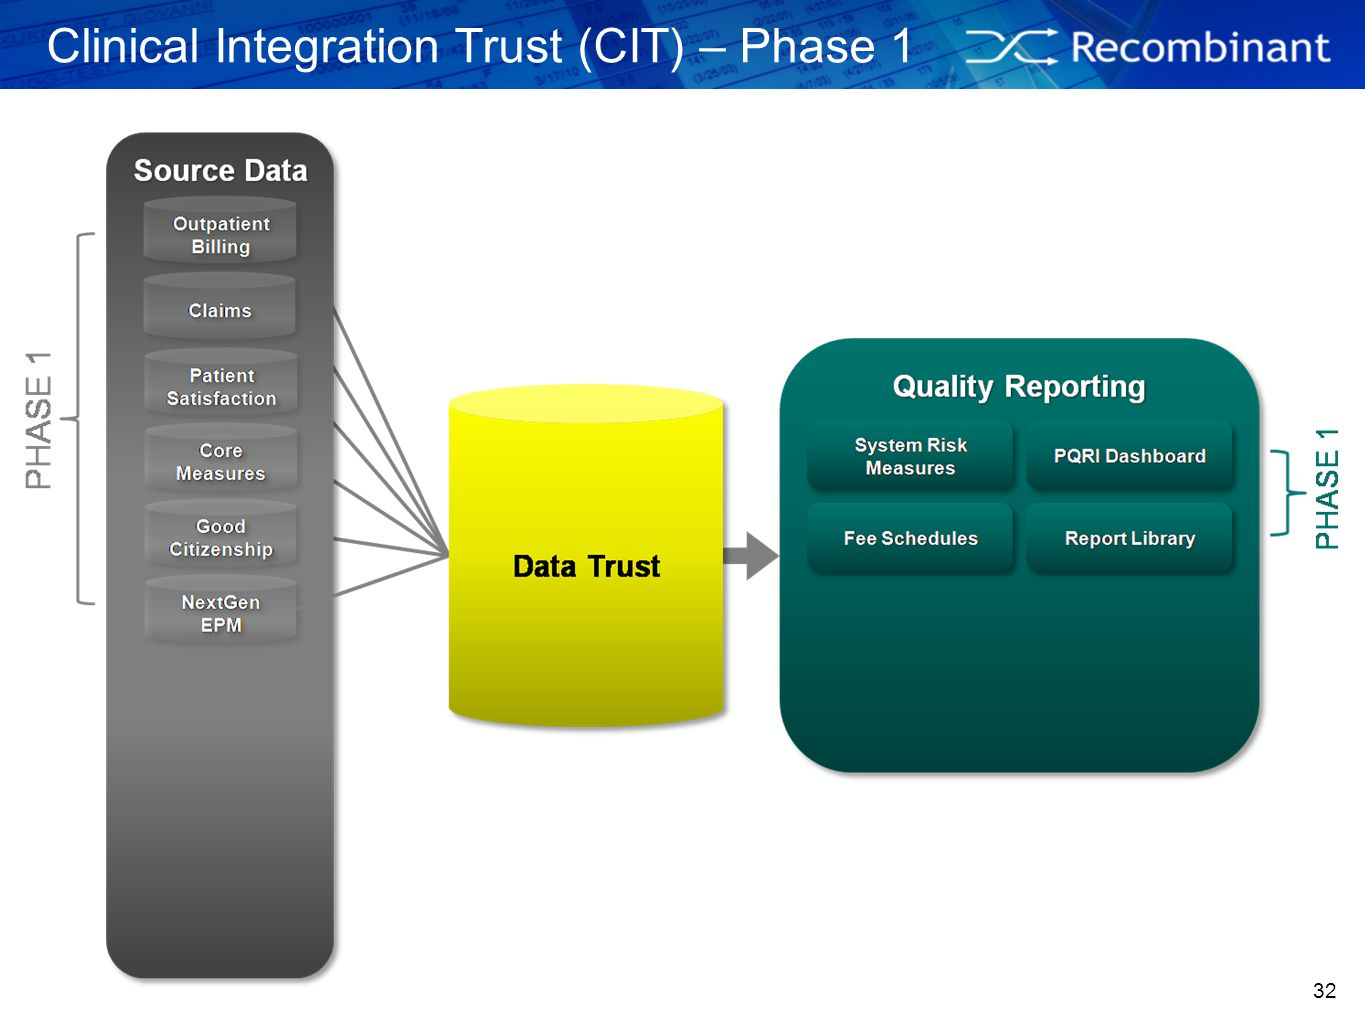 Clinical Integration Trust (CIT) – Phase 1